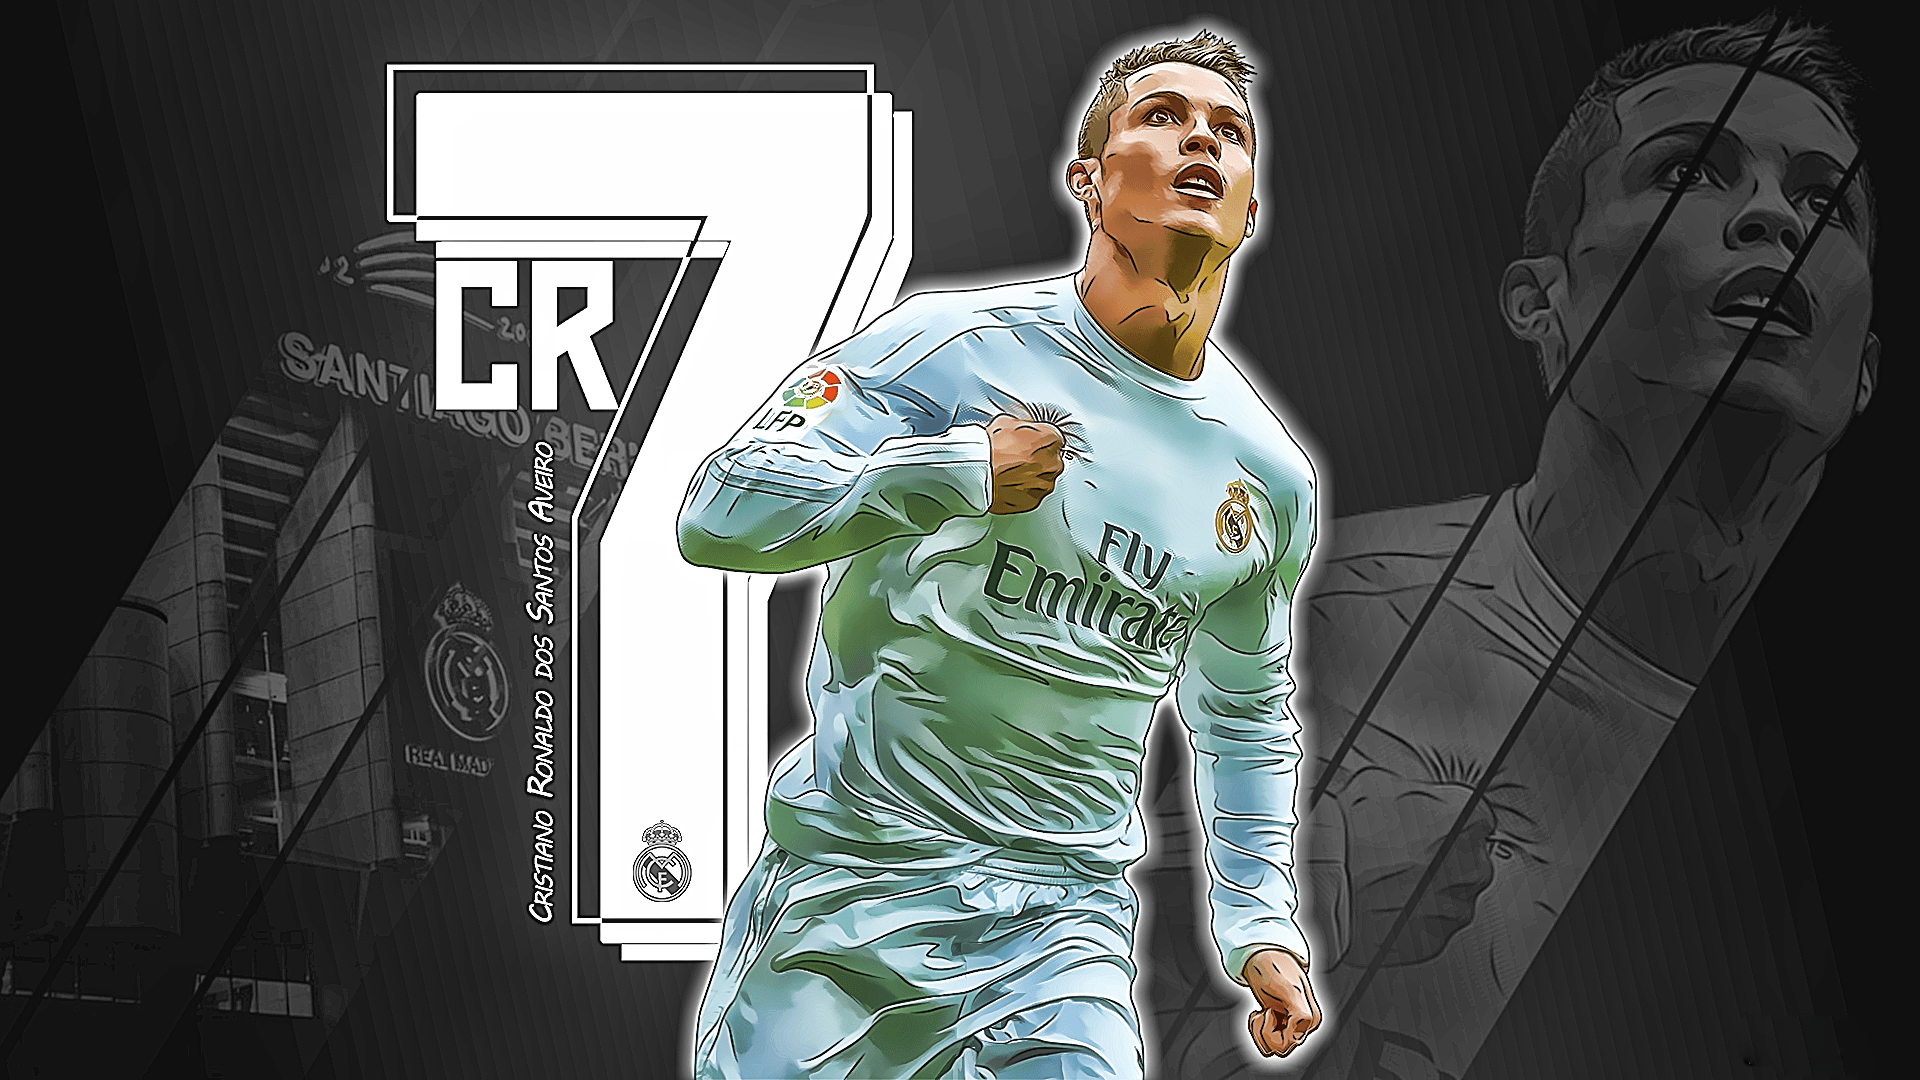 Cr7 Wallpapers 2016 1920x1080